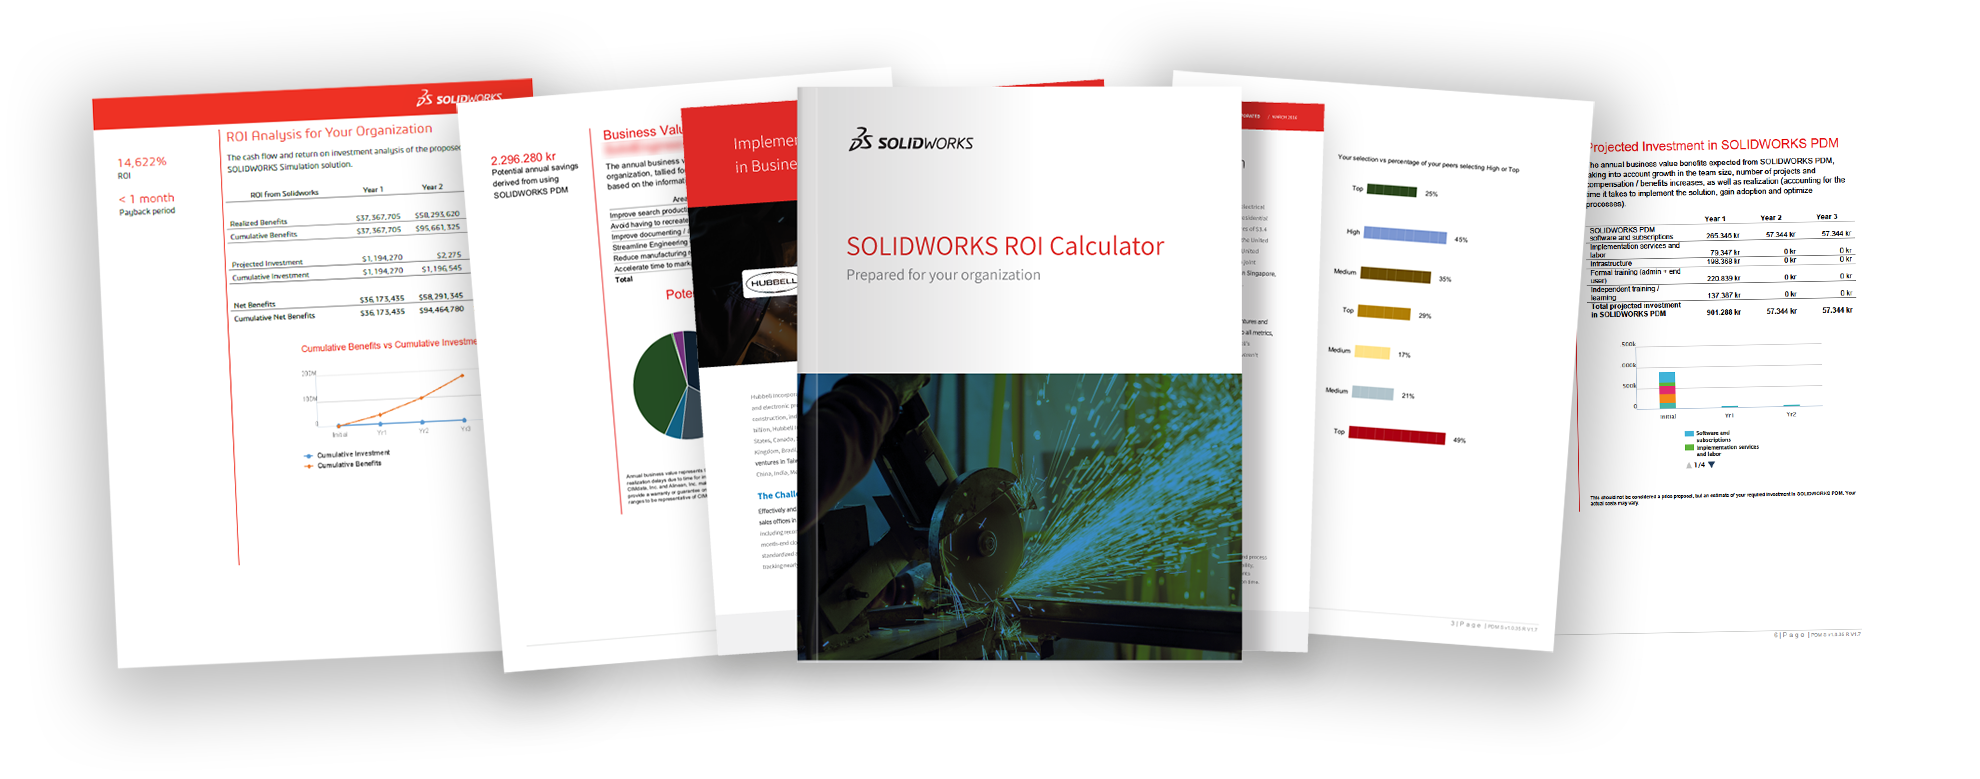 SOLIDWORKS PDM ROI